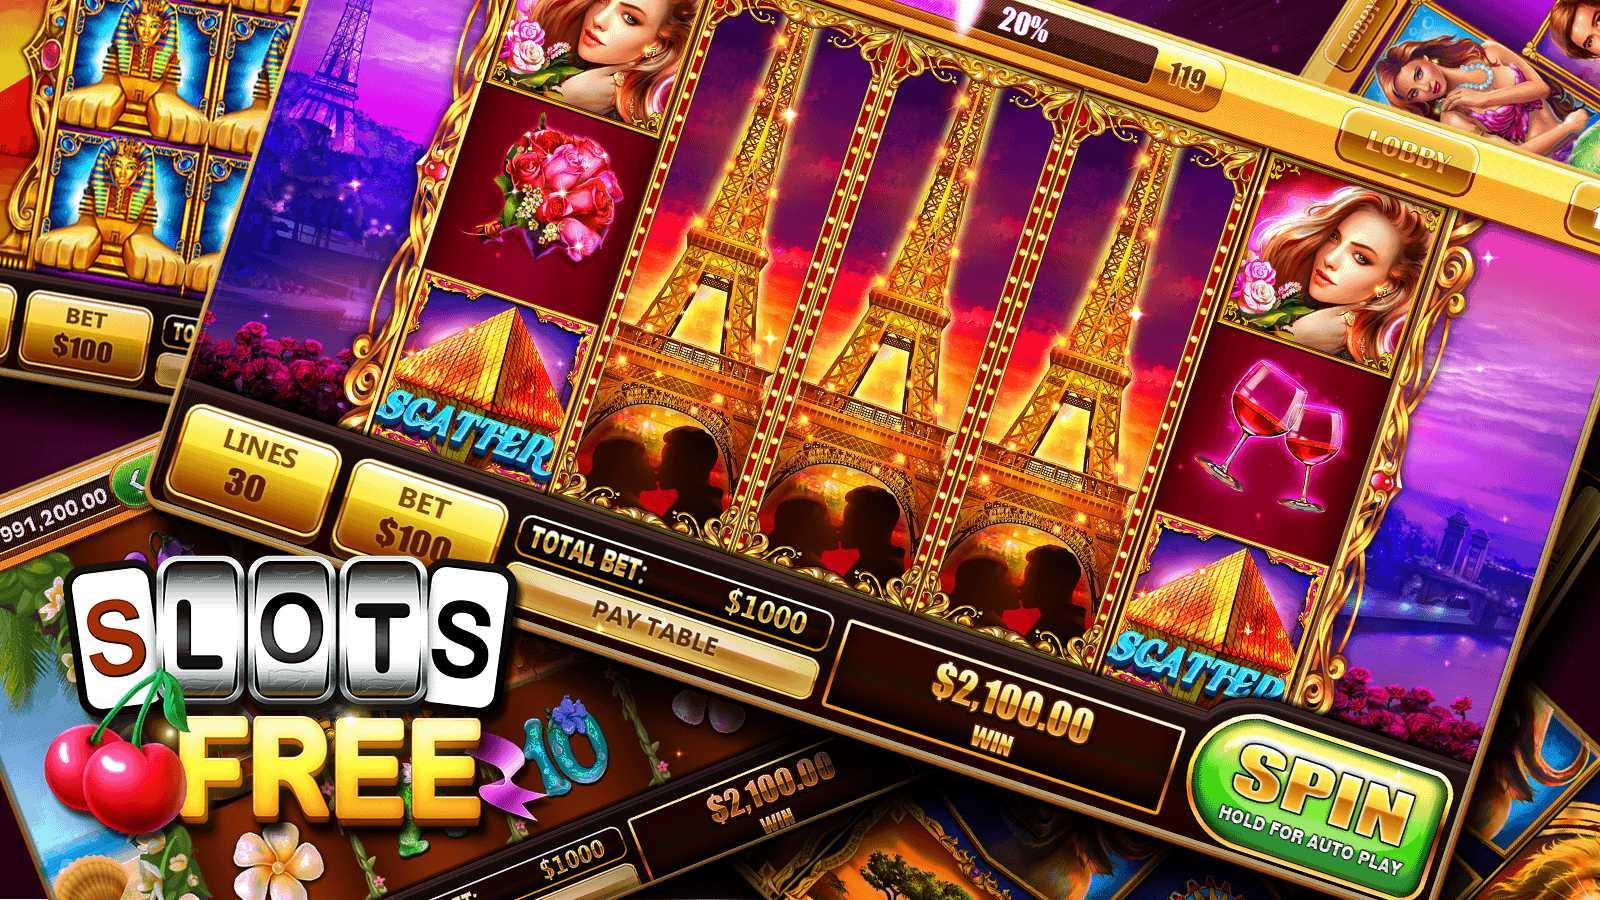 Slot casino Brasil slots casinos gratis - 433999